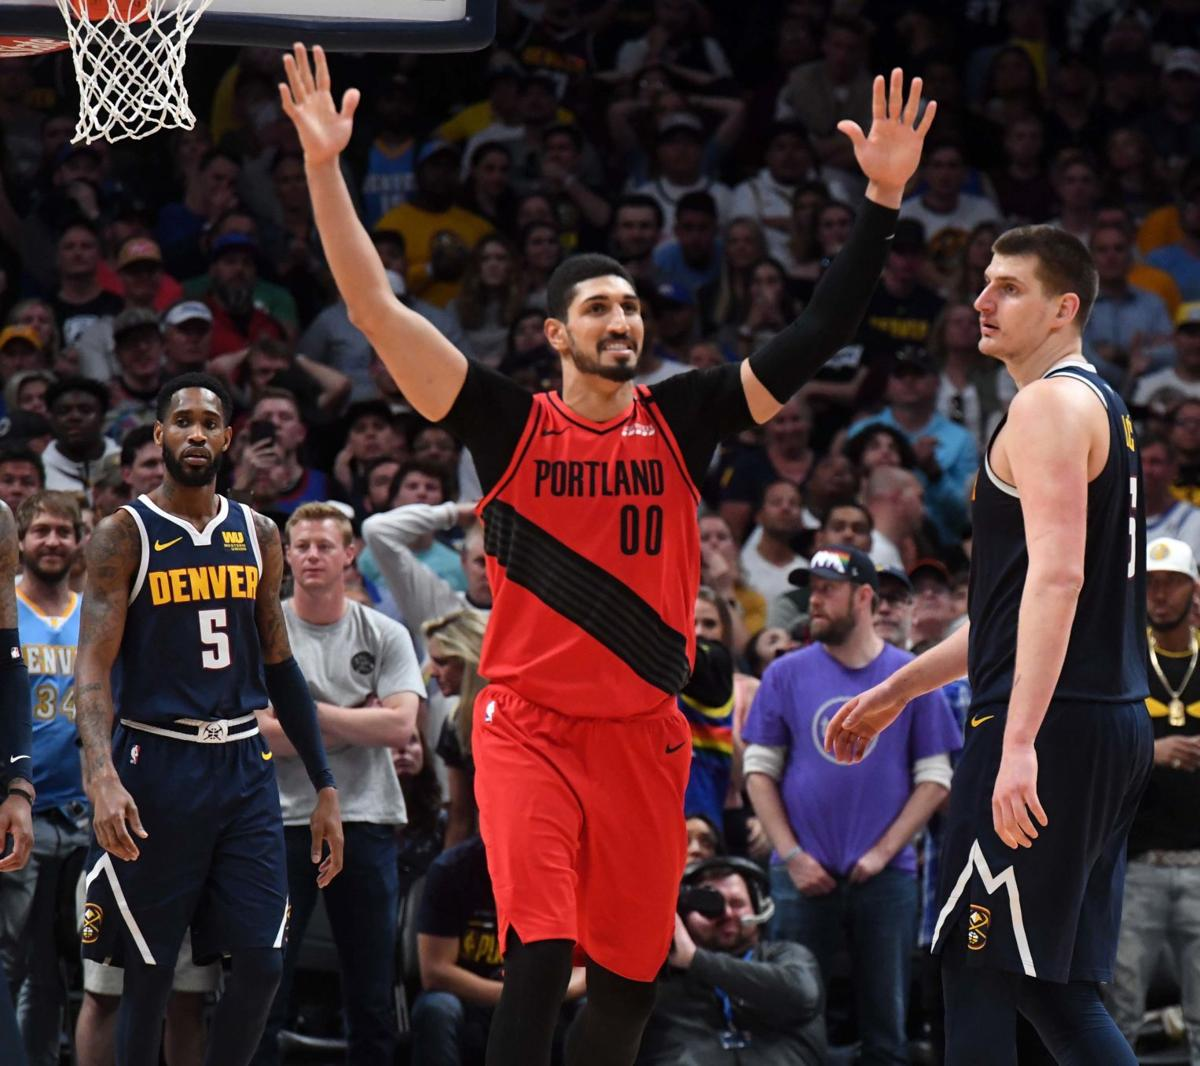 Paul Klee: Despite Game 7 Loss To Blazers, Nuggets Future